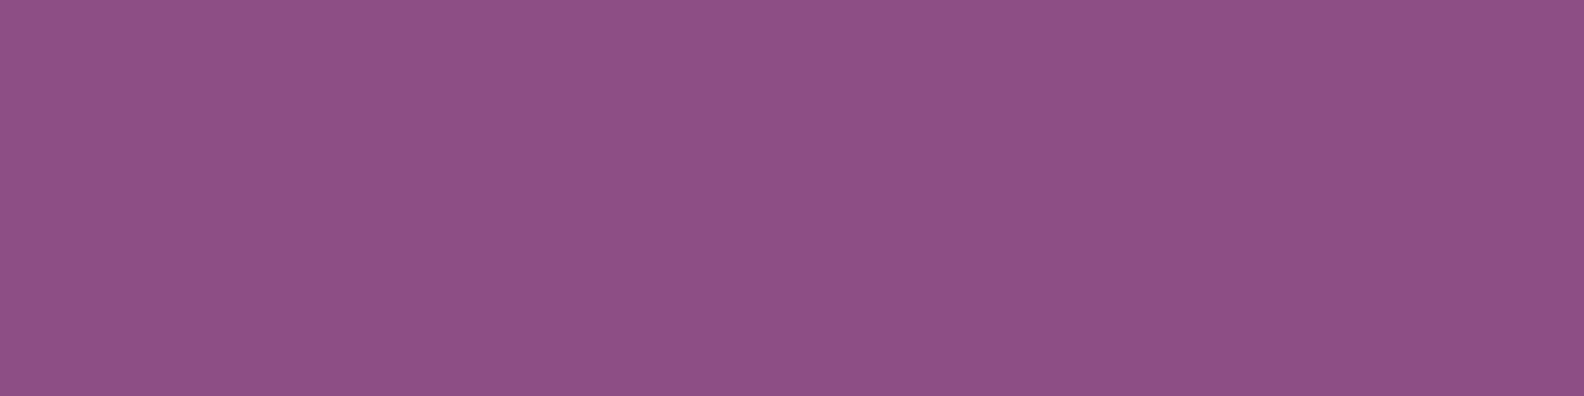 1584x396 Razzmic Berry Solid Color Background